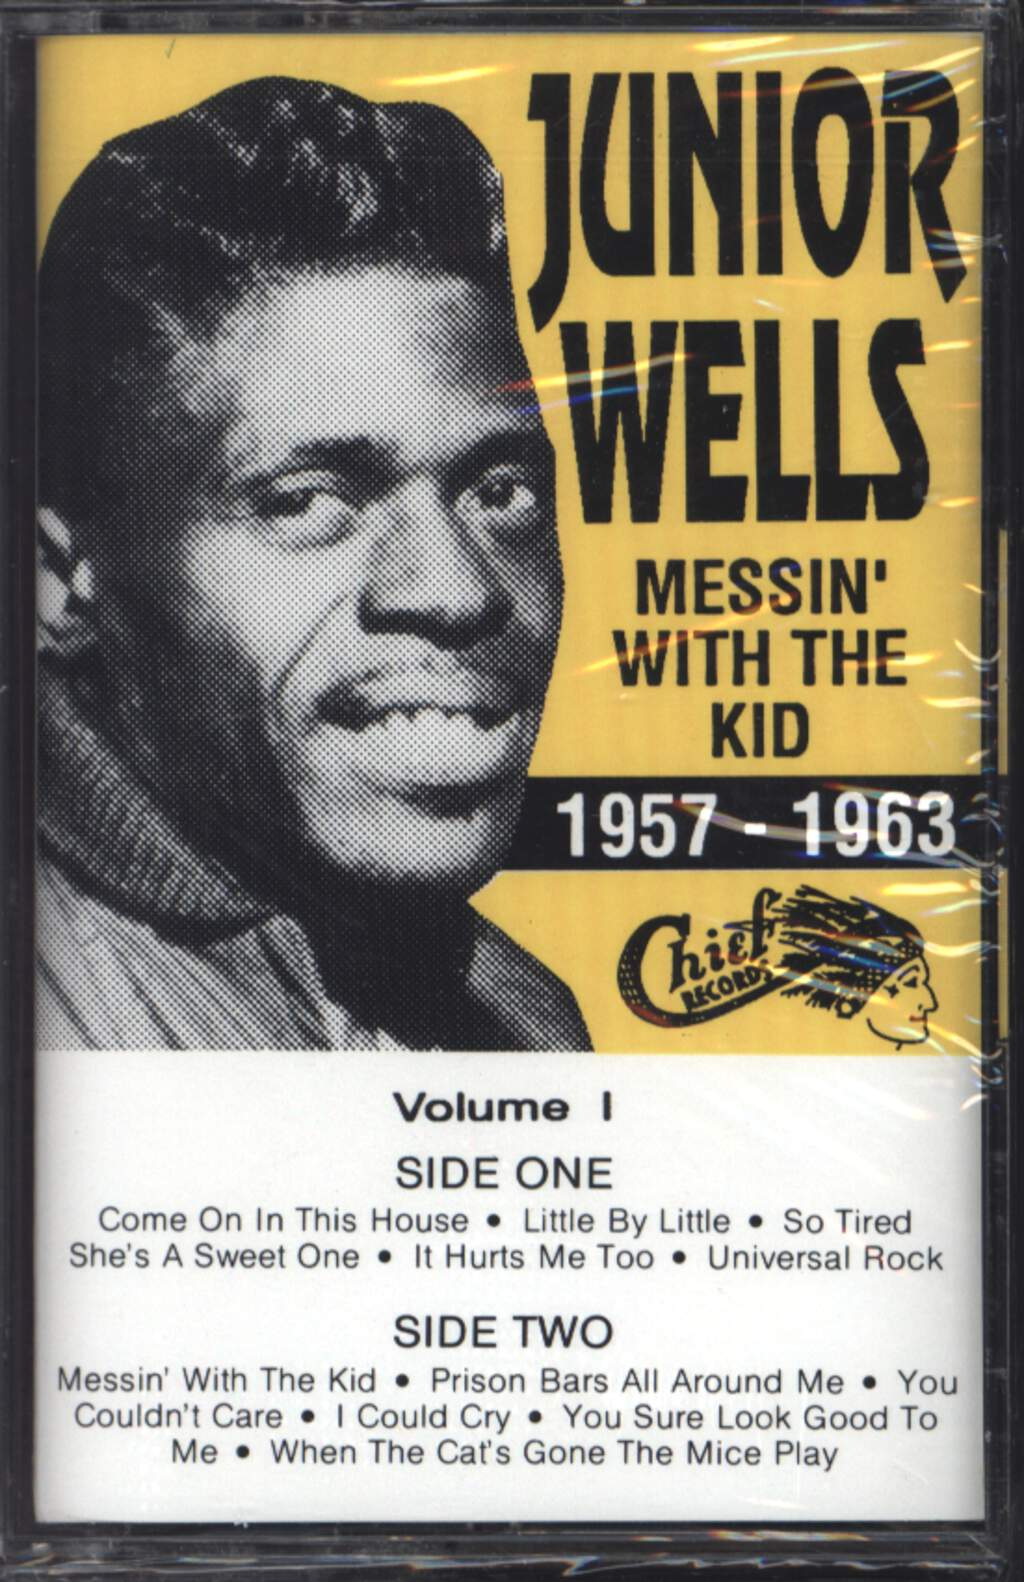 Junior Wells: 1957-1963:  Messin' With The Kid, Compact Cassette